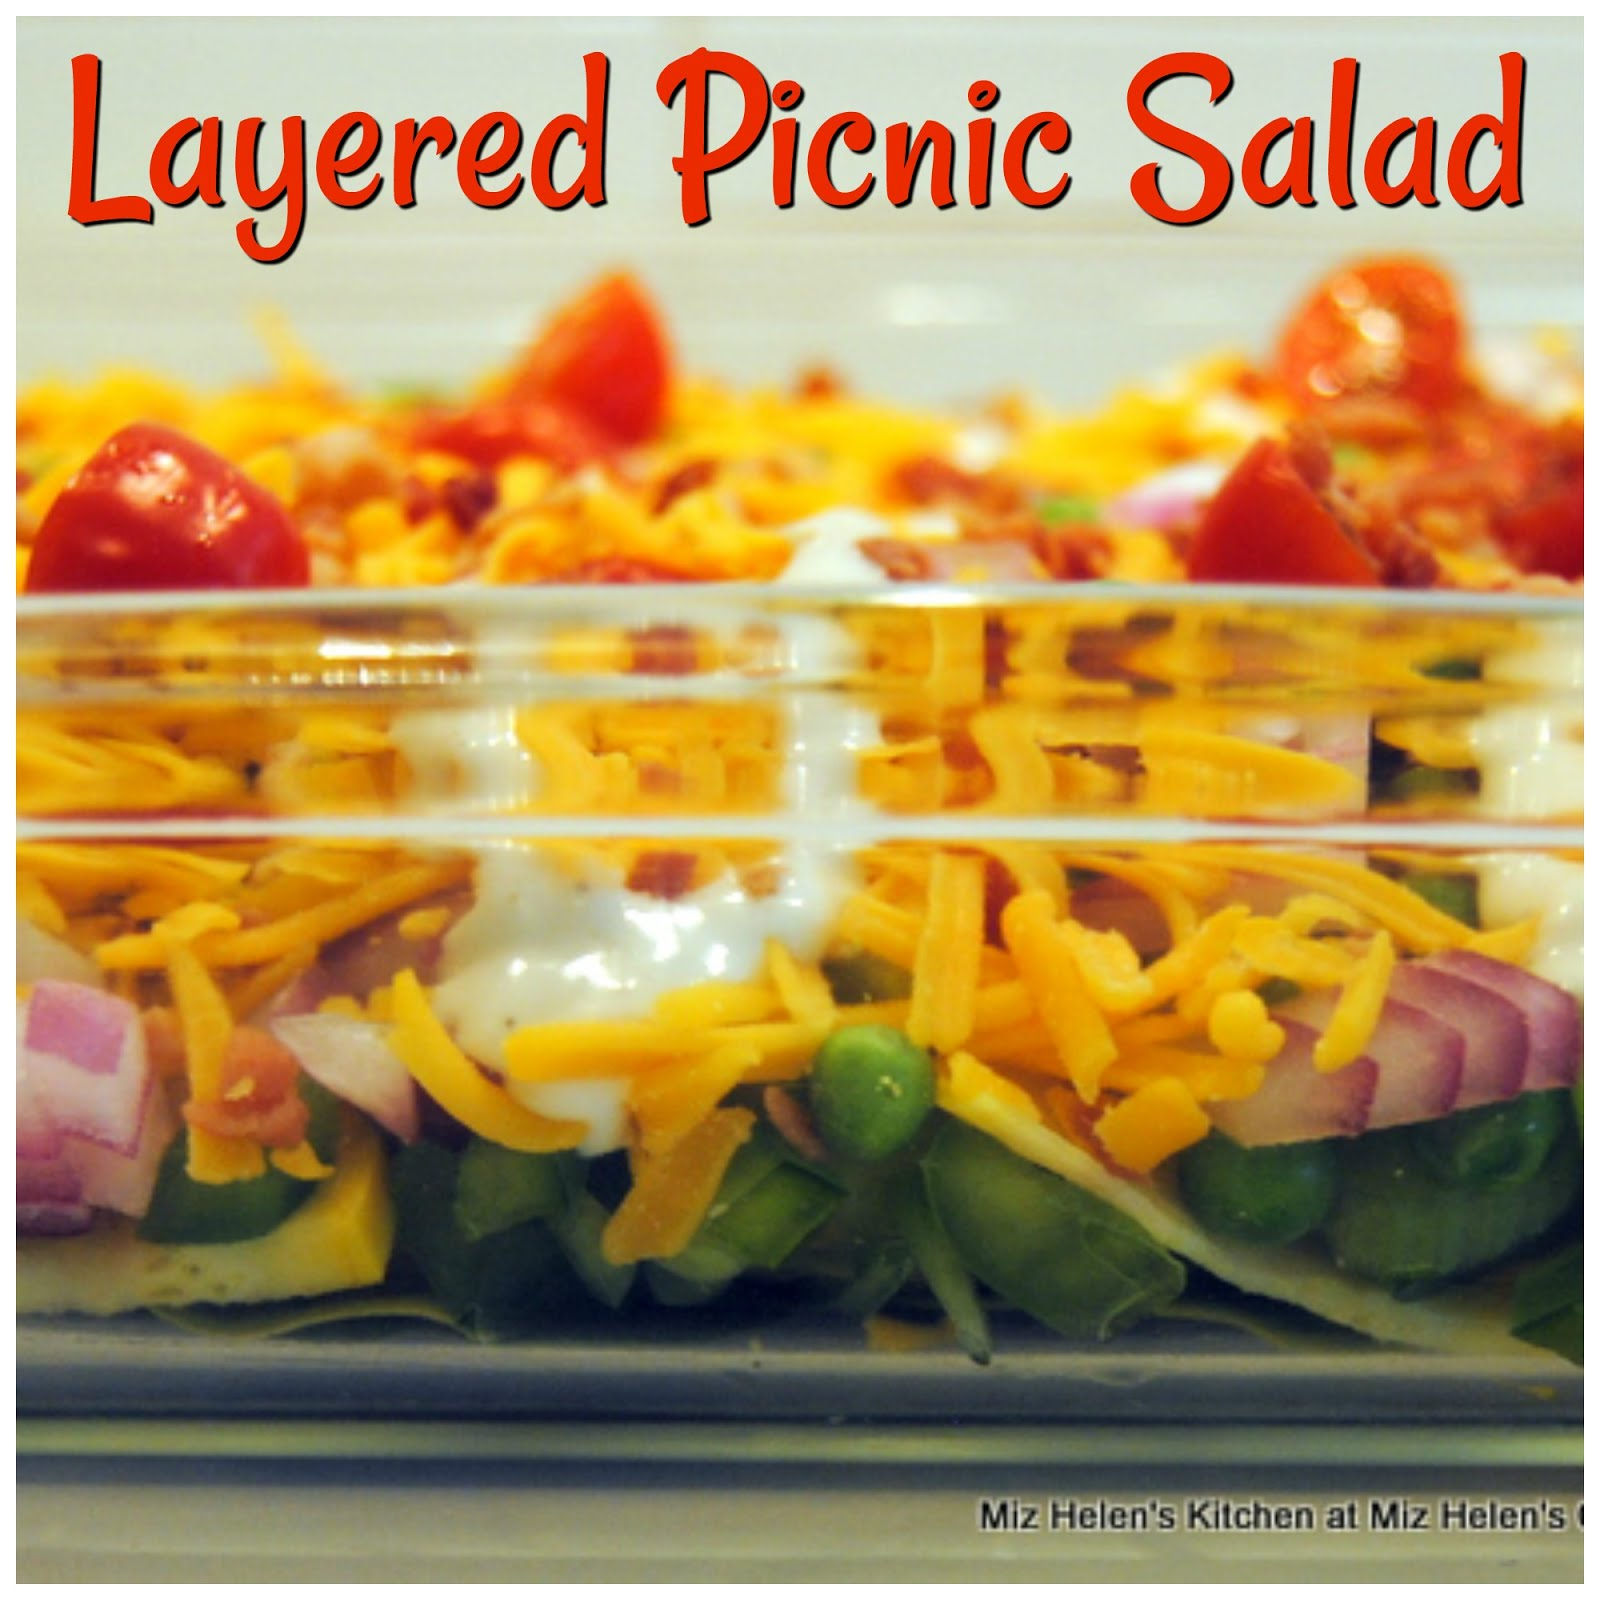 Layered Picnic Salad